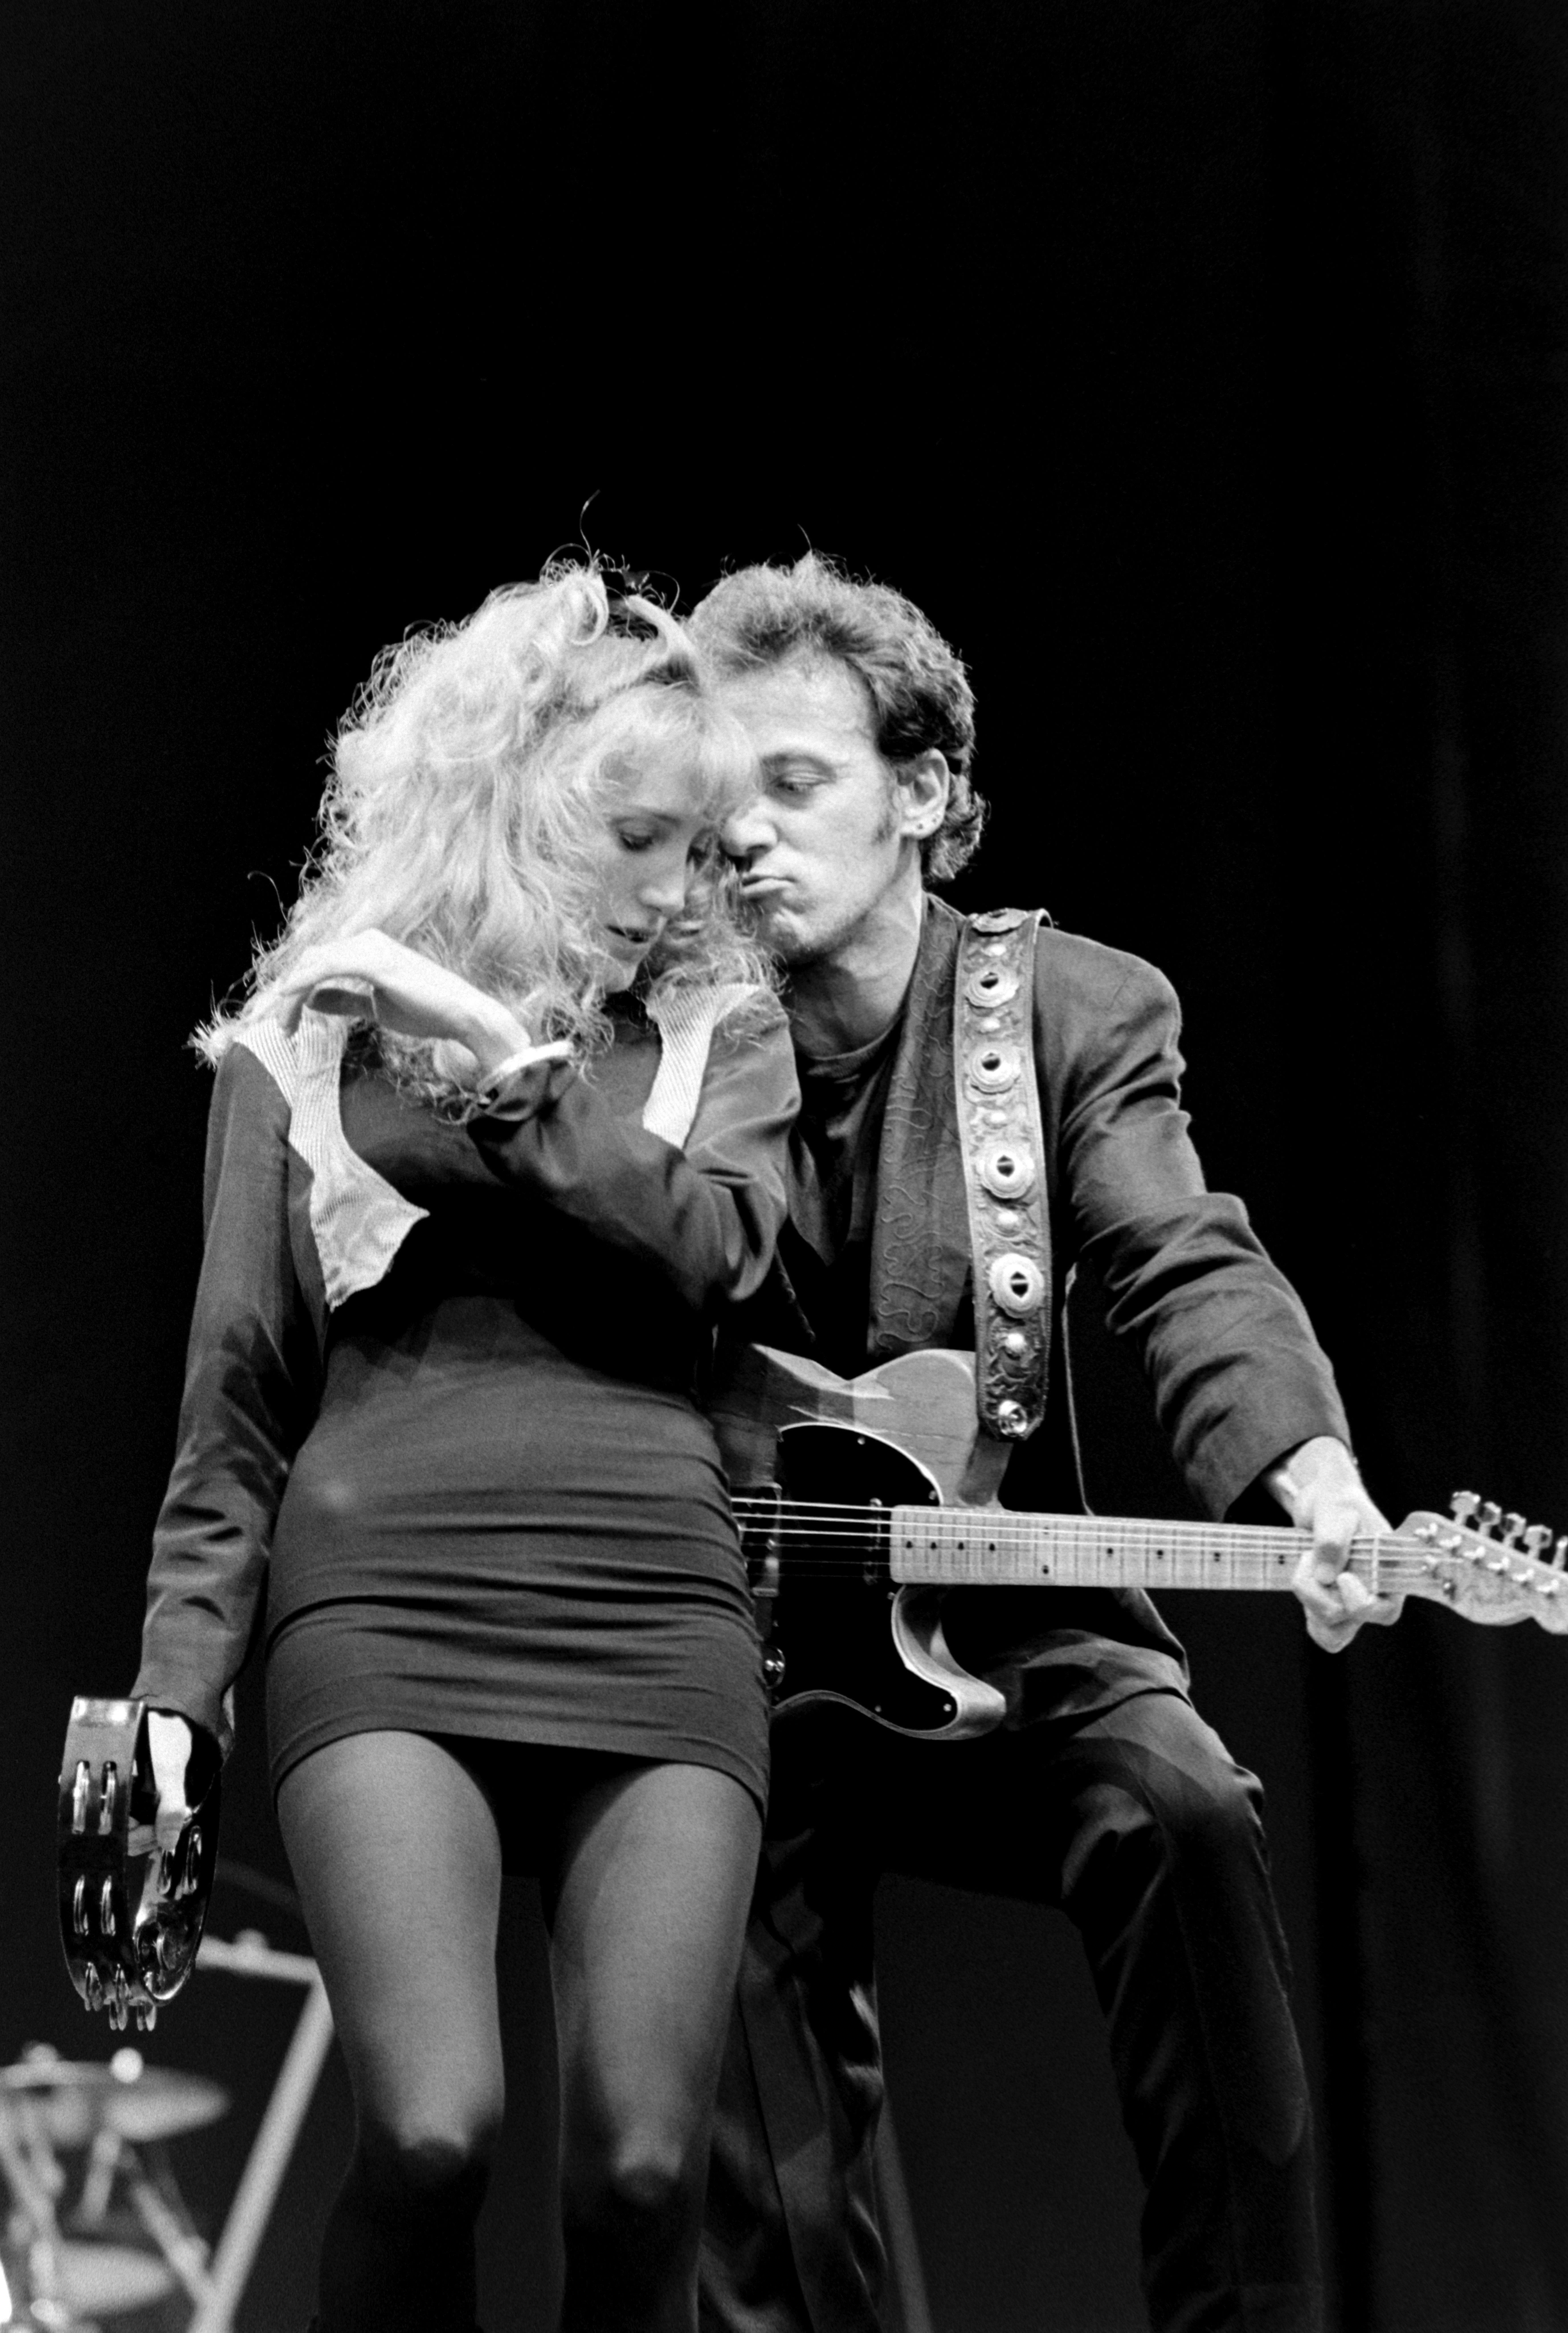 Musician Patti Scialfa performing on stage with Bruce Springsteen at Wembley Stadium, London, June 30th 1988| Photo: Getty Images